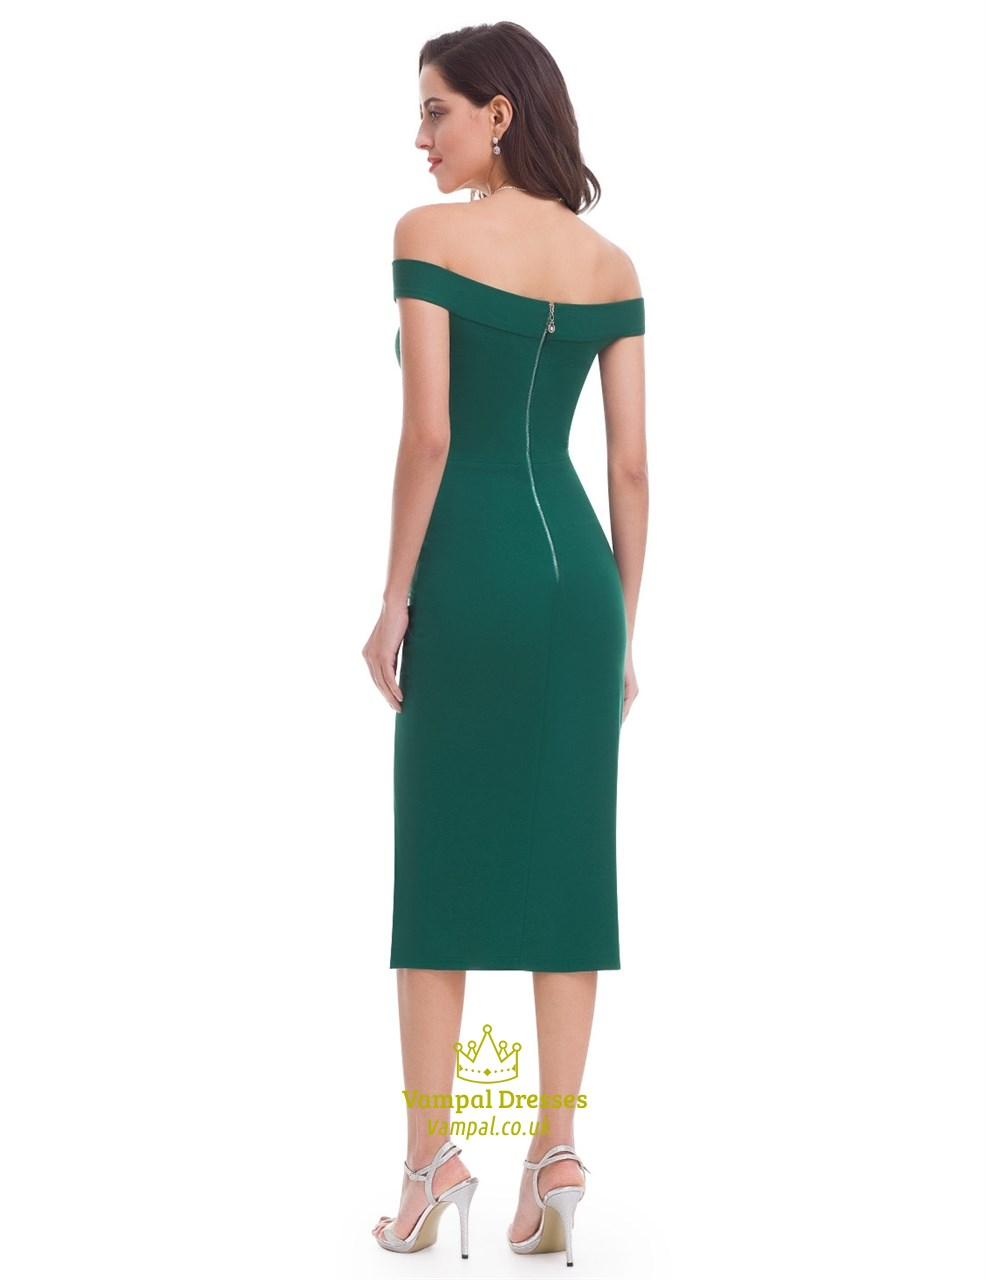 Green Off Shoulder Dresses. Thanks for visiting DHgate Canada site to search for the newest green off shoulder dresses at an affordable price. We are proud to offer you numerous options to find the cheap hen dress online that best suits you.